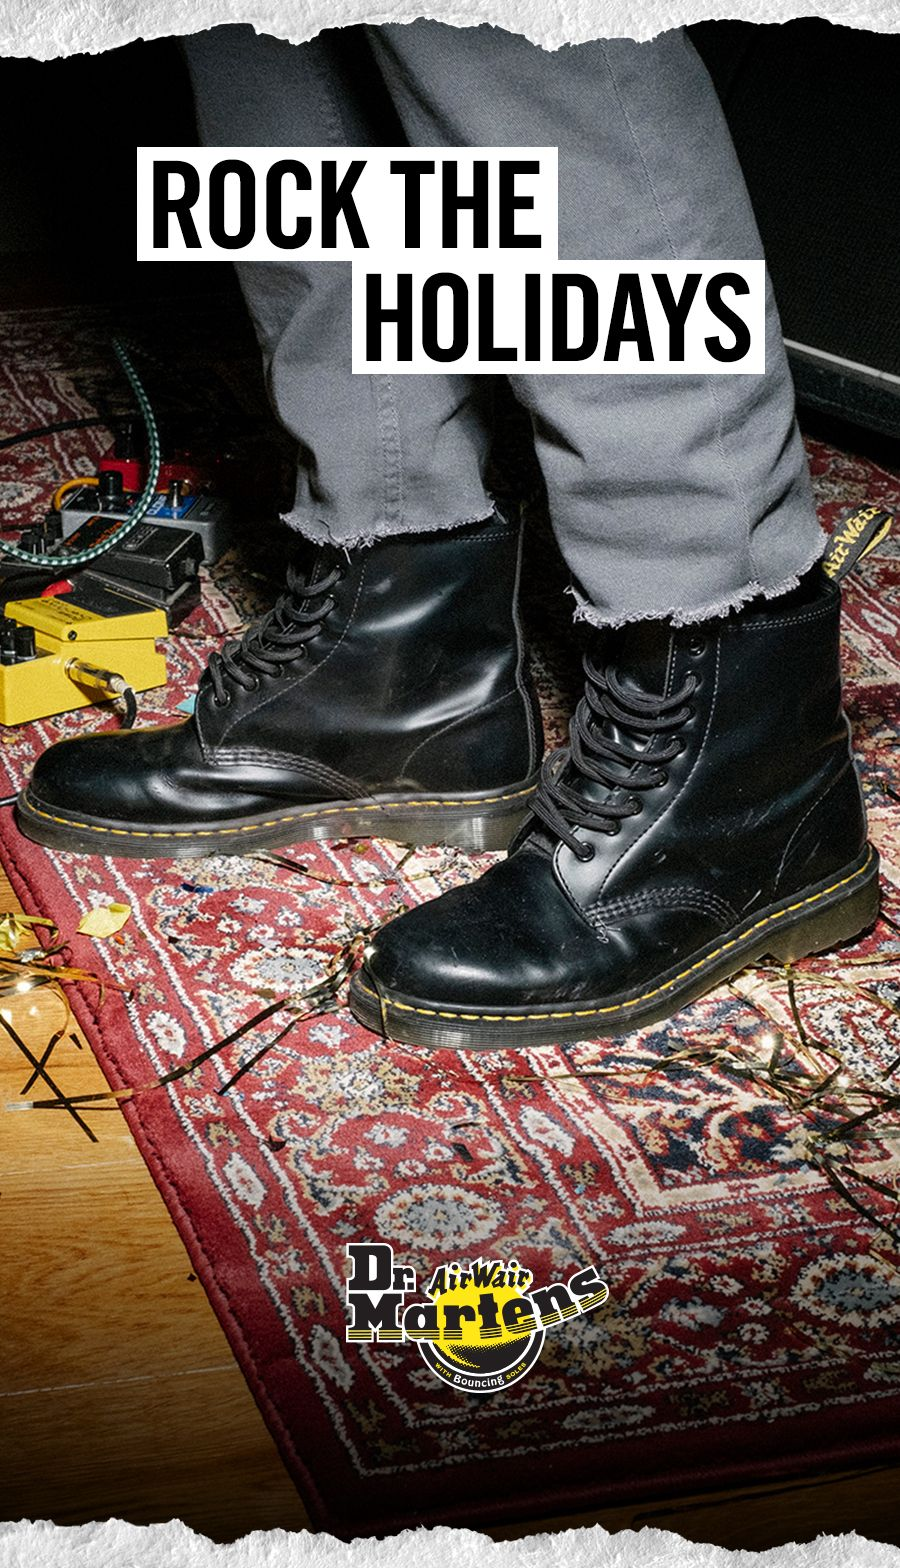 Wrap up a pair of Docs and give him a gift that's tough